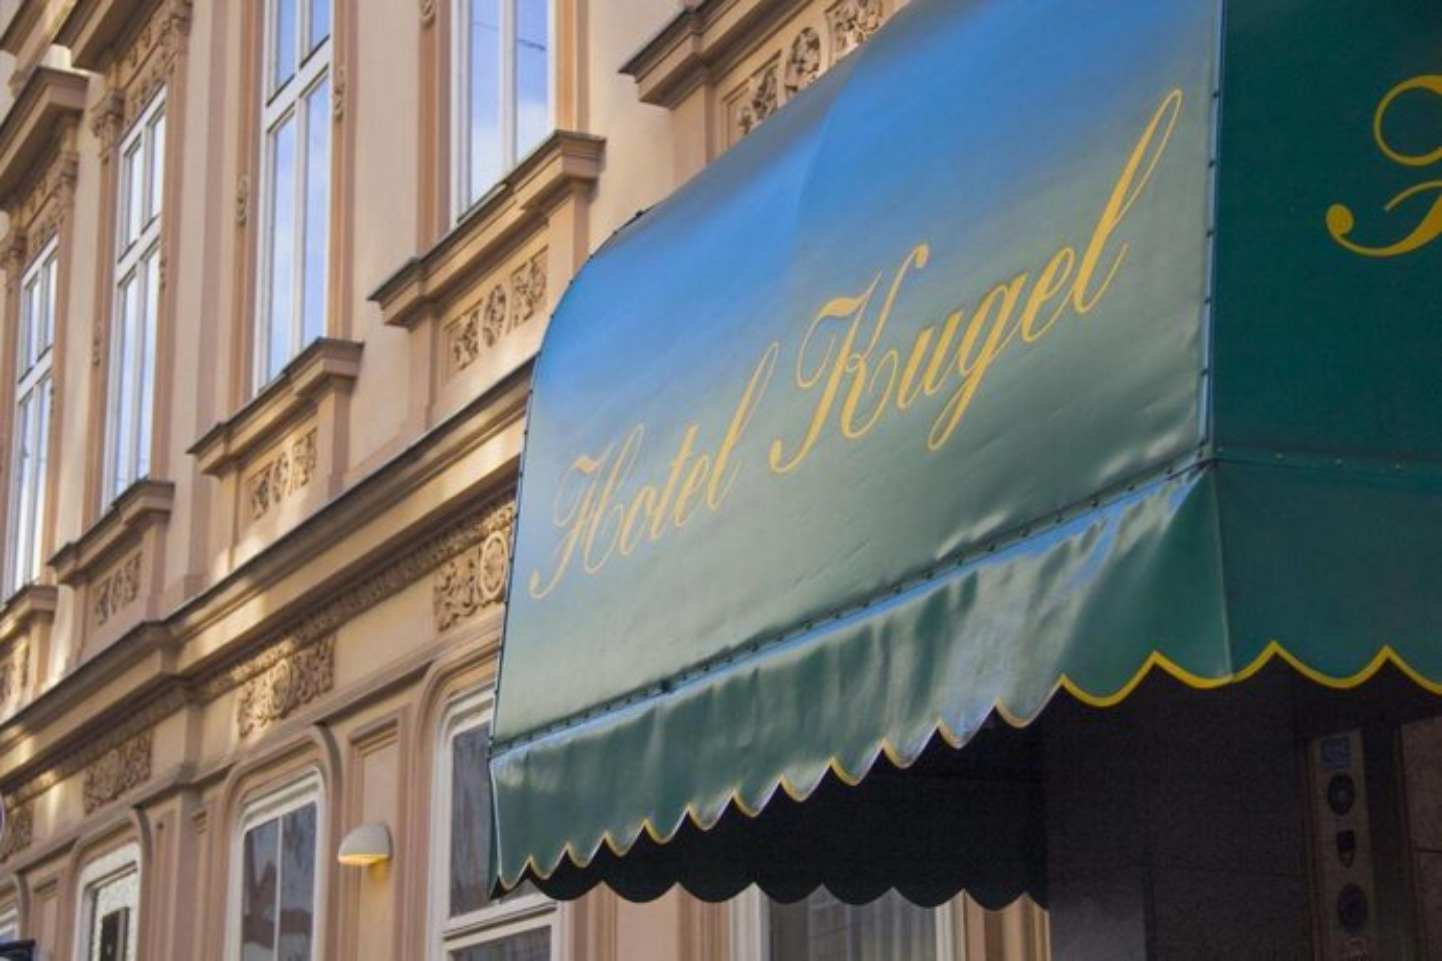 A sign on the side of a building at Hotel Kugel Wien.